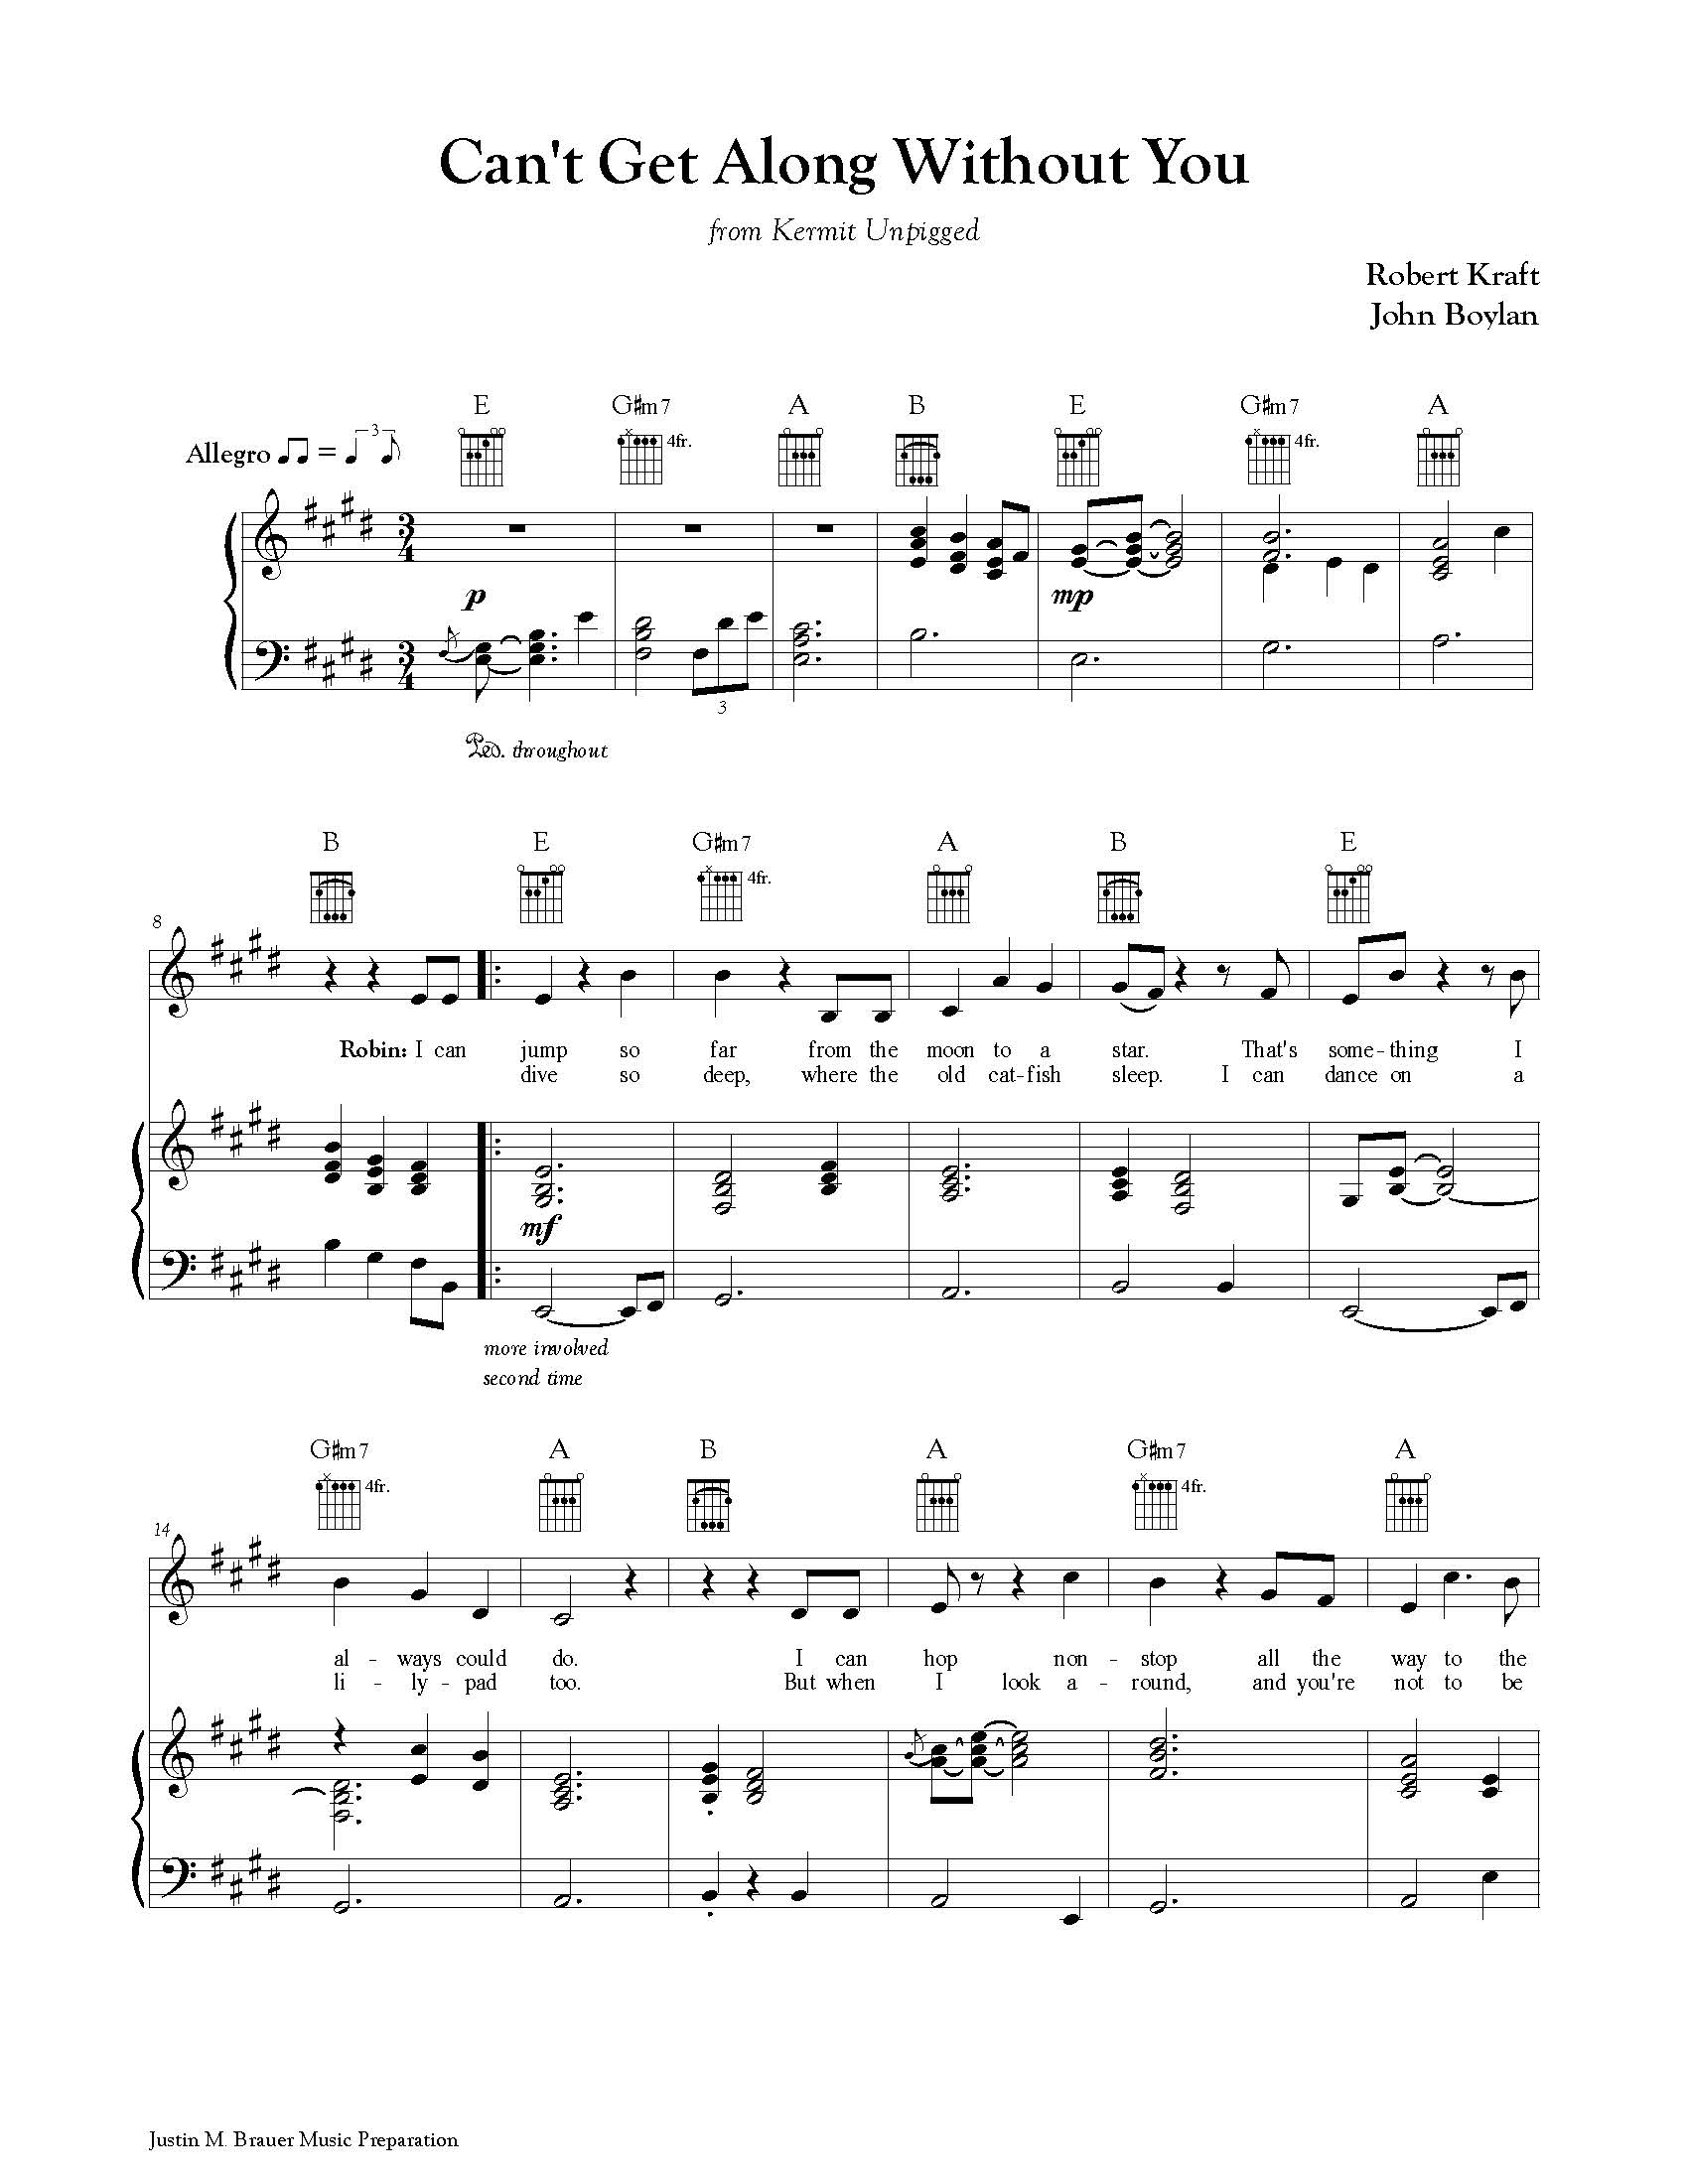 Piano/Vocal with Chords and Fretboards (transcription and engraving) -  Can't Get Along Without You from  Kermit Unpigged